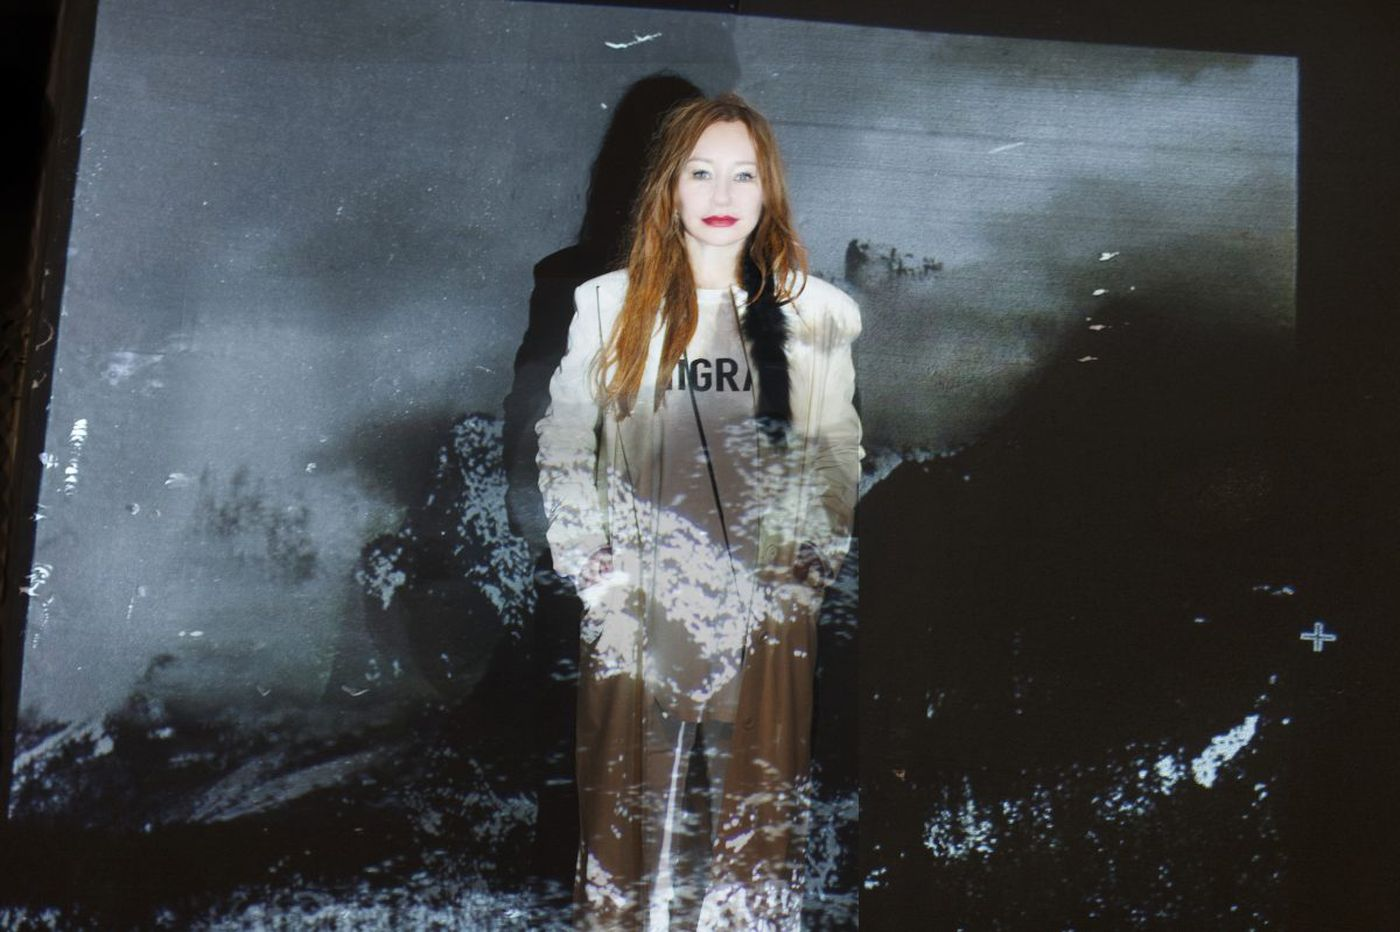 The poetic, political Tori Amos won't stand for 'these internal pervs'